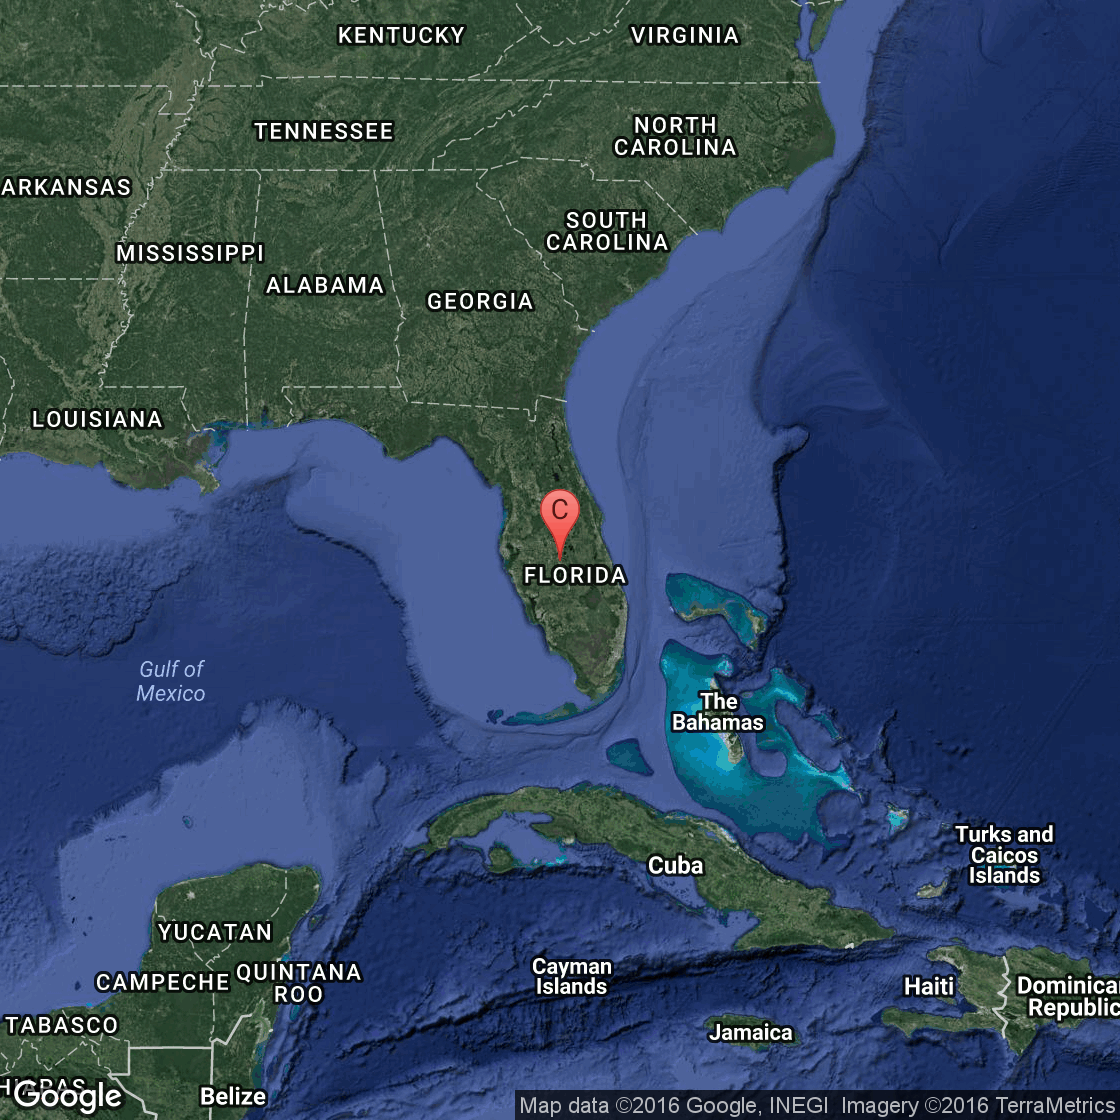 AllInclusive Vacation Resorts In The United States USA Today - Is florida part of the united states